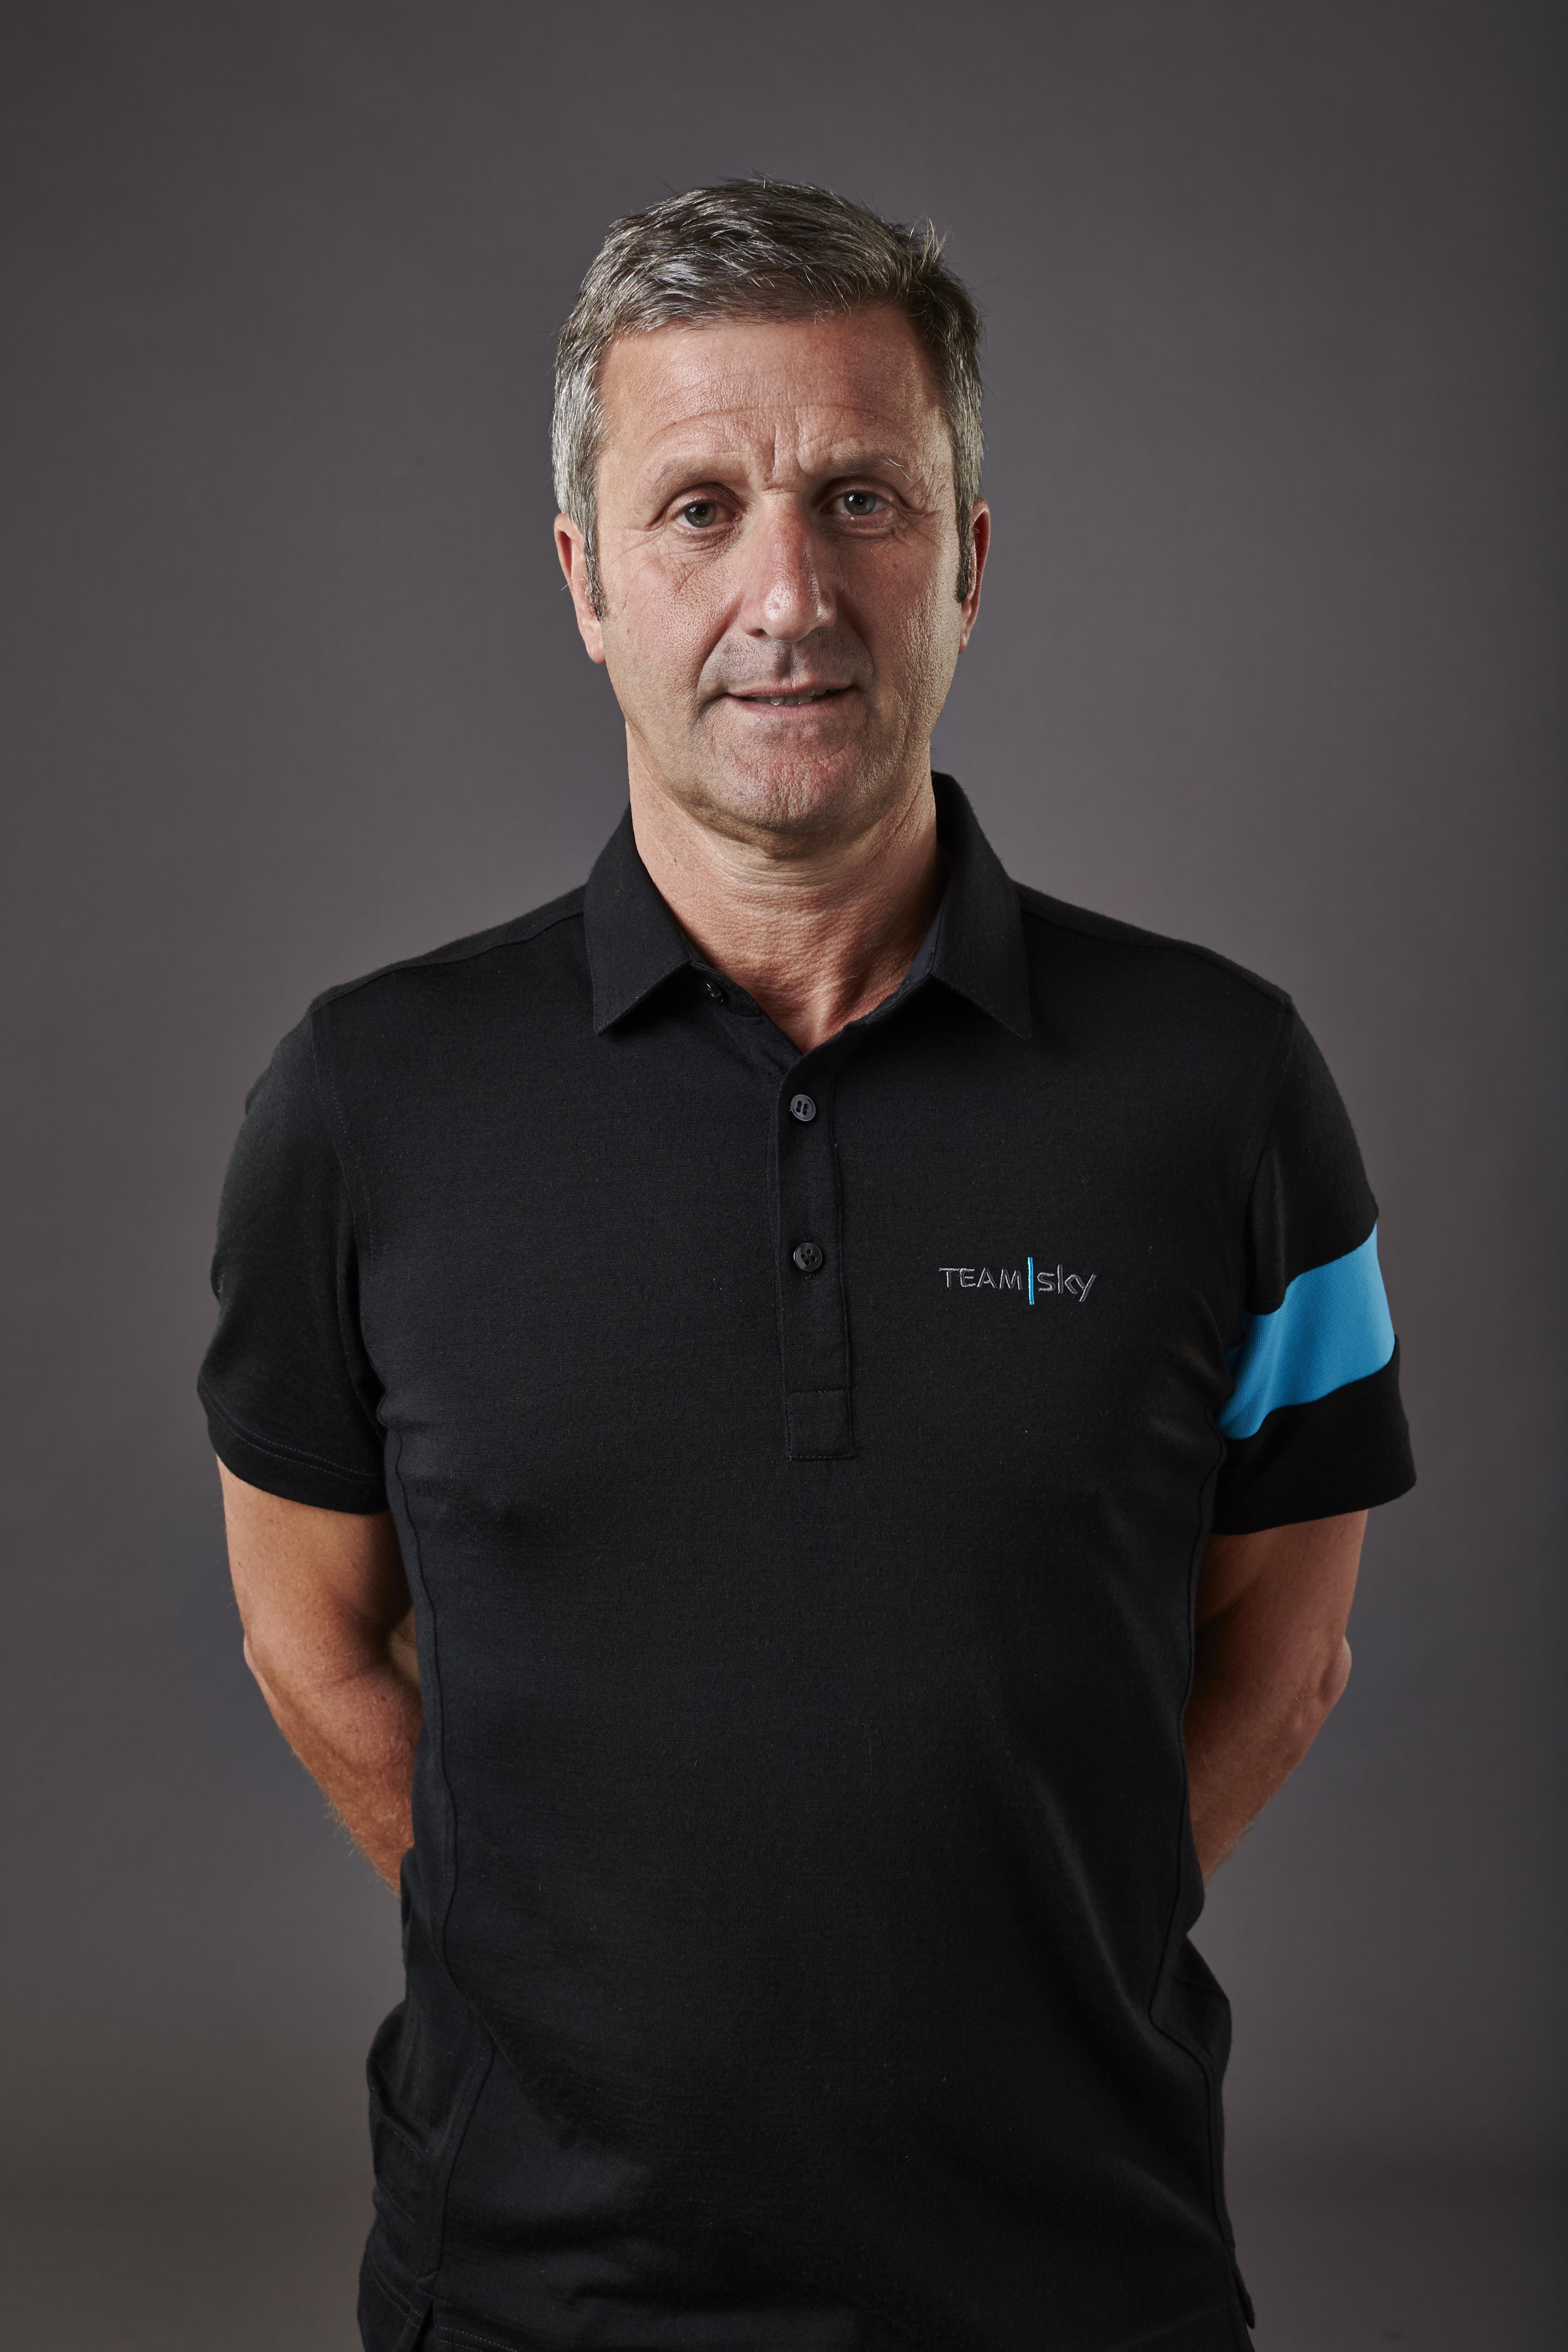 Dr Richard Freeman - the Team Sky doctor who failed to upload key medical information about what drugs he had administered